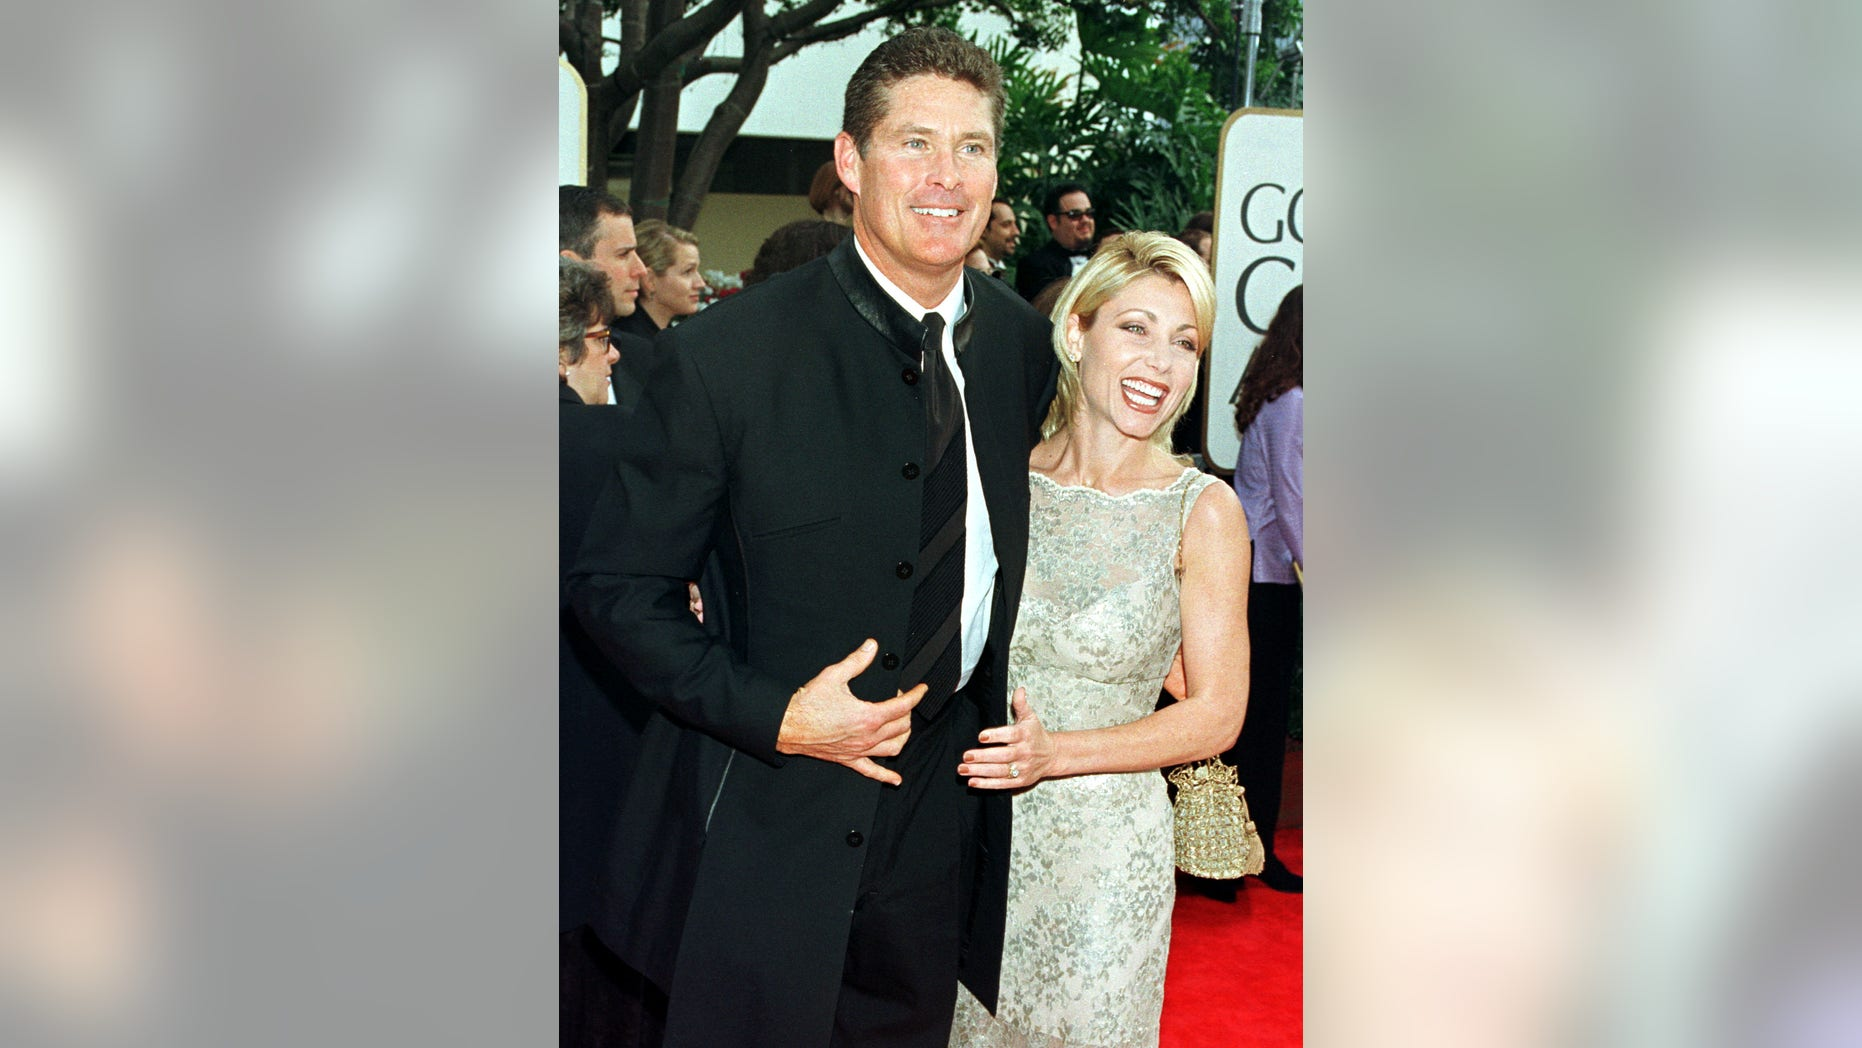 """""""Baywatch"""" star David Hasselhoff and his wife Pamela Bach arrive at the 55th annual Golden Globe Awards in Beverly Hills, January 18. The Golden Globe Awards, sponsored by the Hollywood Foreign Press Association, honors excellence in film and television. - RTXIM7B"""